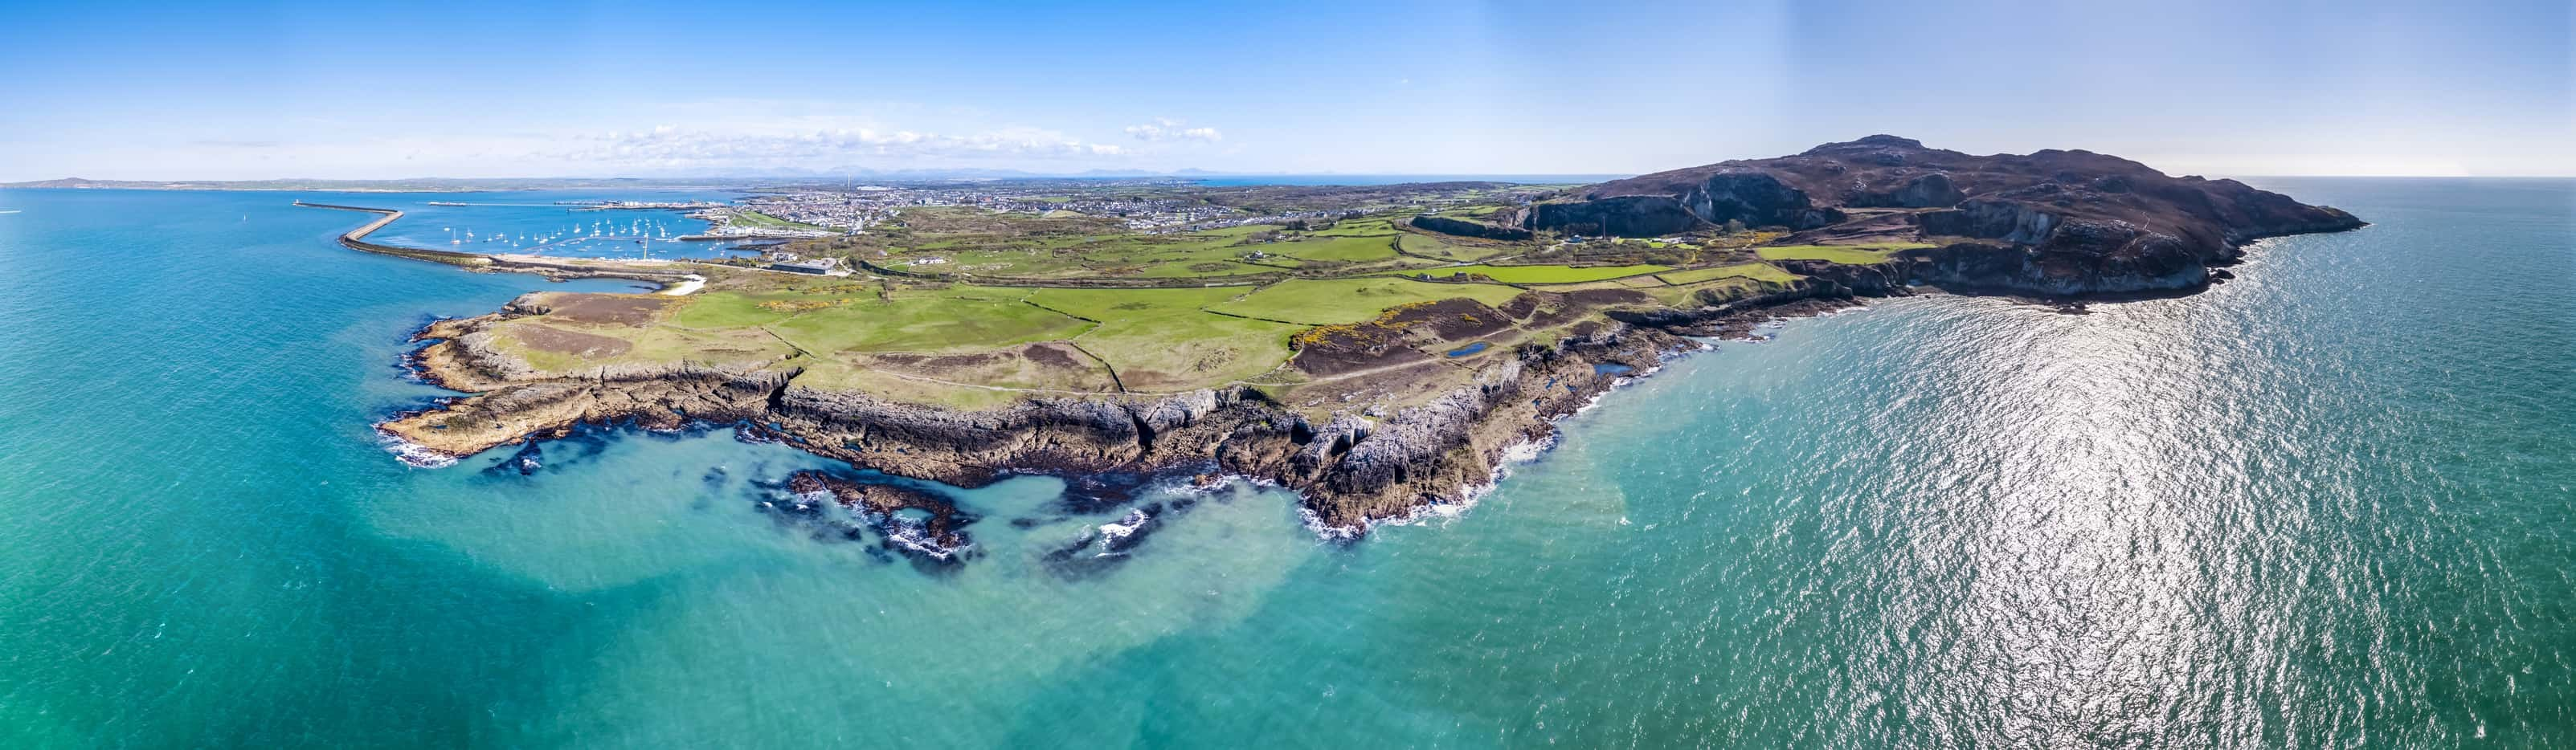 Aerial view of the beautiful coast and cliffs between North Stack Fog station and Holyhead on Anglesey, North wales - UK